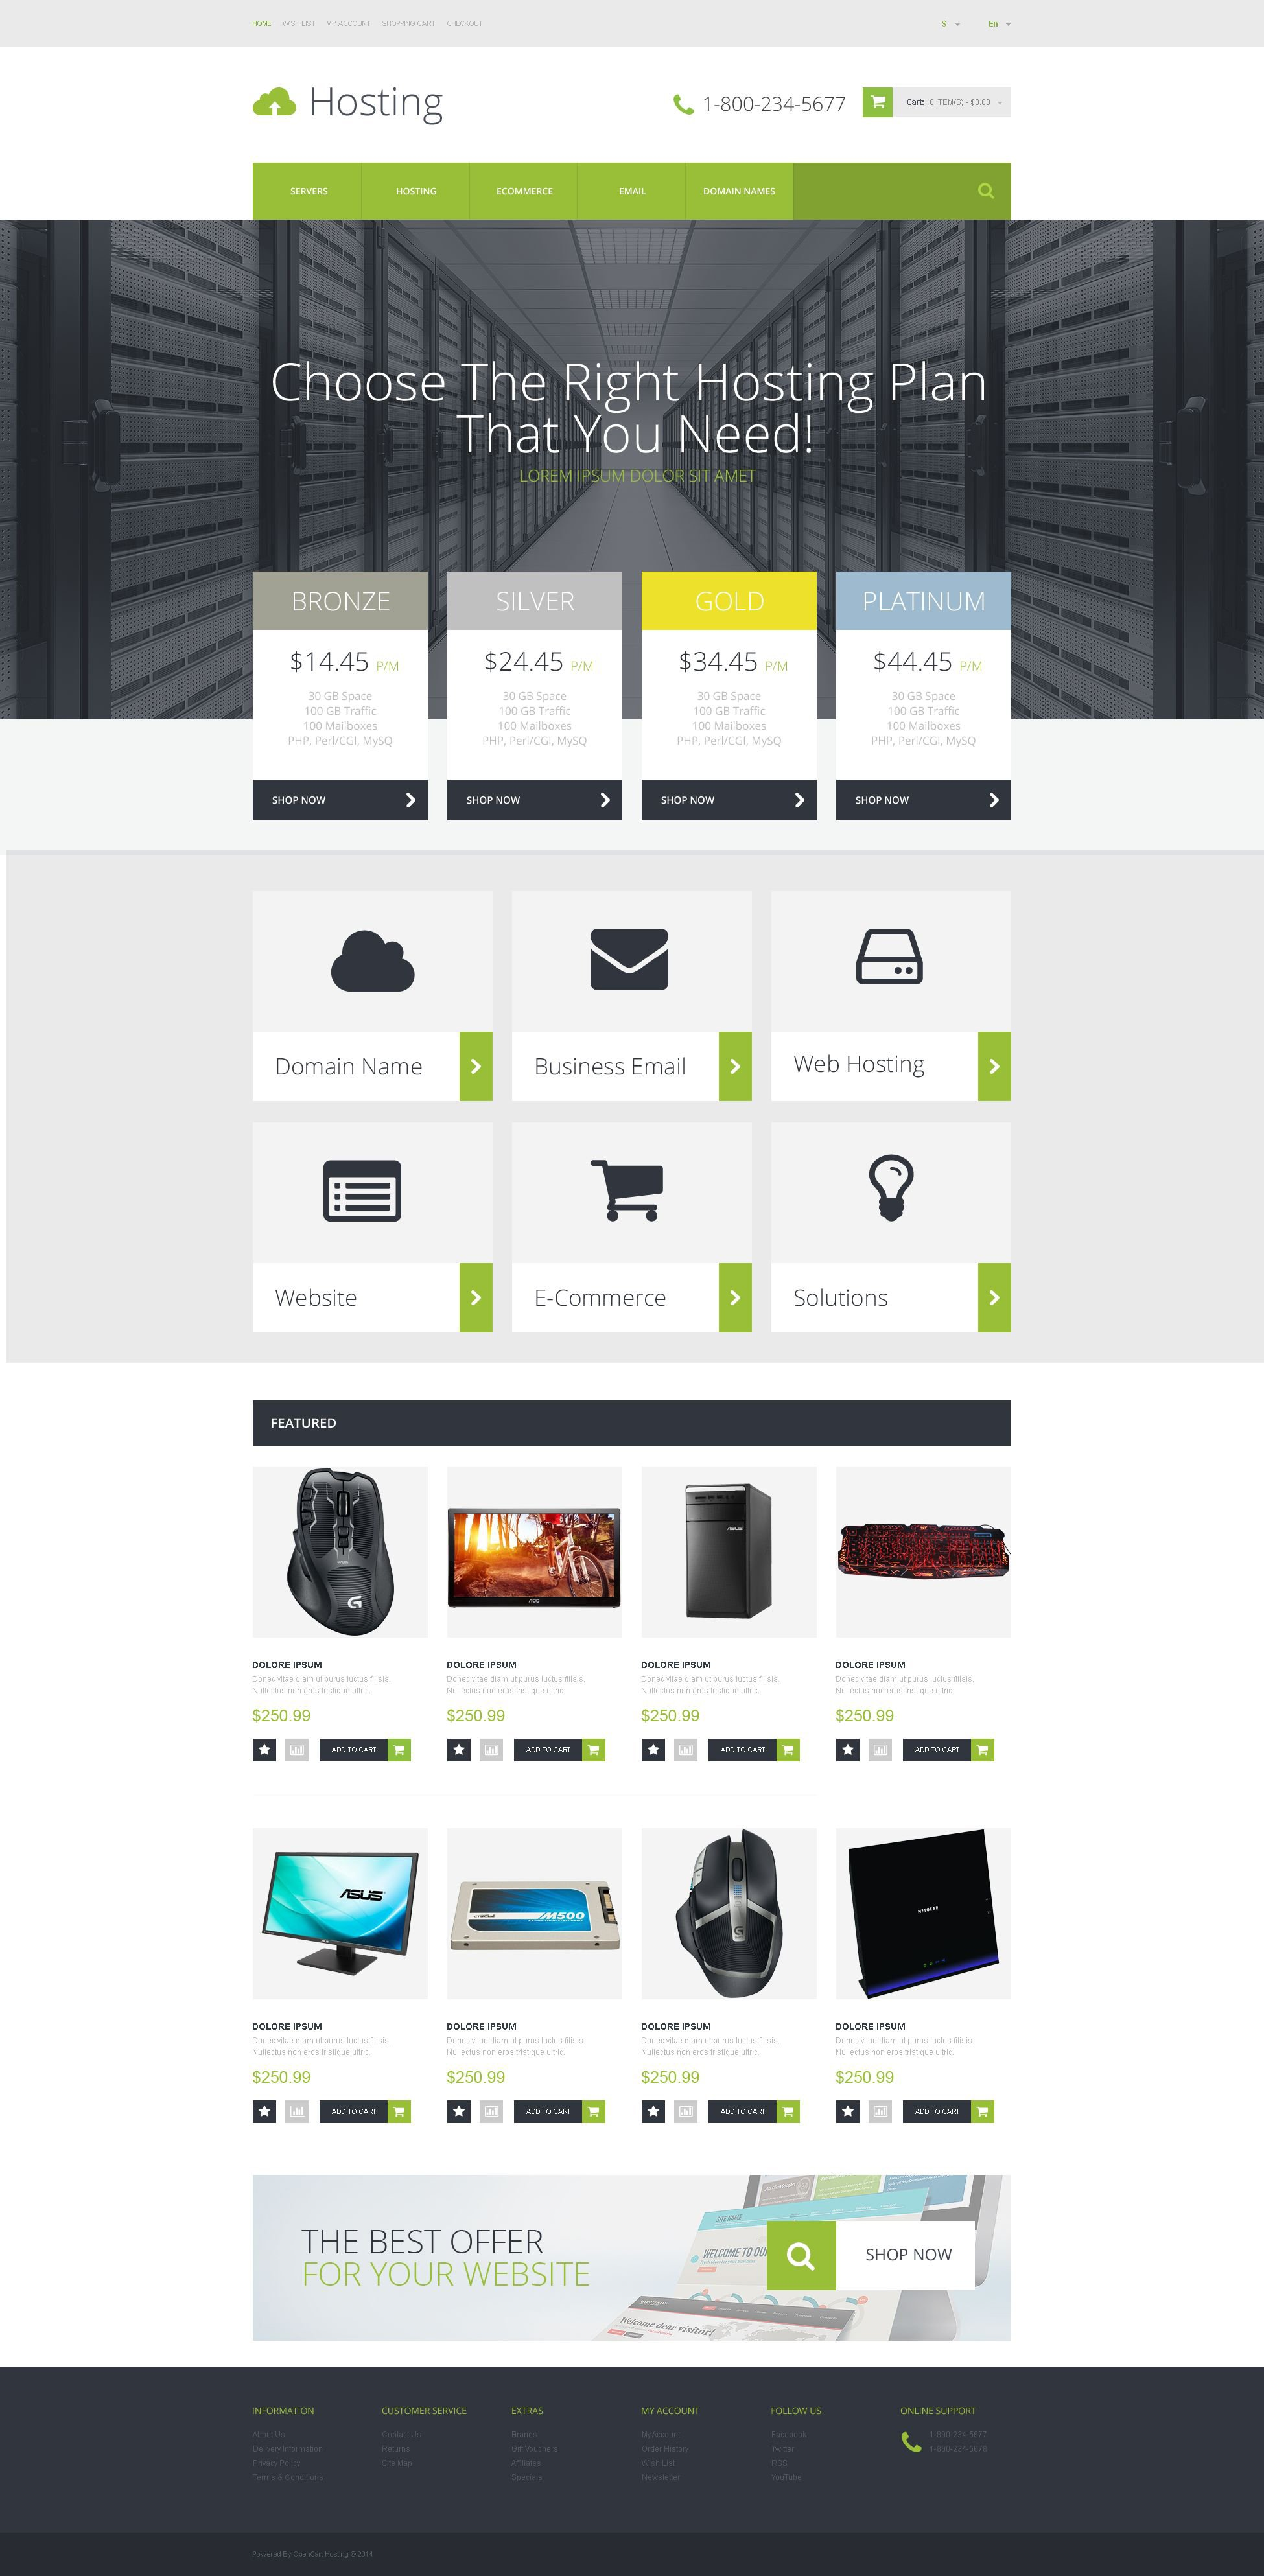 The Hosting Company Solution OpenCart Design 53161, one of the best OpenCart templates of its kind (hosting, most popular), also known as hosting company solution OpenCart template, domain OpenCart template, services OpenCart template, beginner OpenCart template, plan OpenCart template, standard OpenCart template, advanced OpenCart template, dedicated OpenCart template, workteam OpenCart template, tools OpenCart template, special offer OpenCart template, server OpenCart template, monitoring OpenCart template, management OpenCart template, account OpenCart template, activation OpenCart template, client OpenCart template, technology solution OpenCart template, data center provider OpenCart template, traffic OpenCart template, internet OpenCart template, web IT processor and related with hosting company solution, domain, services, beginner, plan, standard, advanced, dedicated, workteam, tools, special offer, server, monitoring, management, account, activation, client, technology solution, data center provider, traffic, internet, web IT processor, etc.